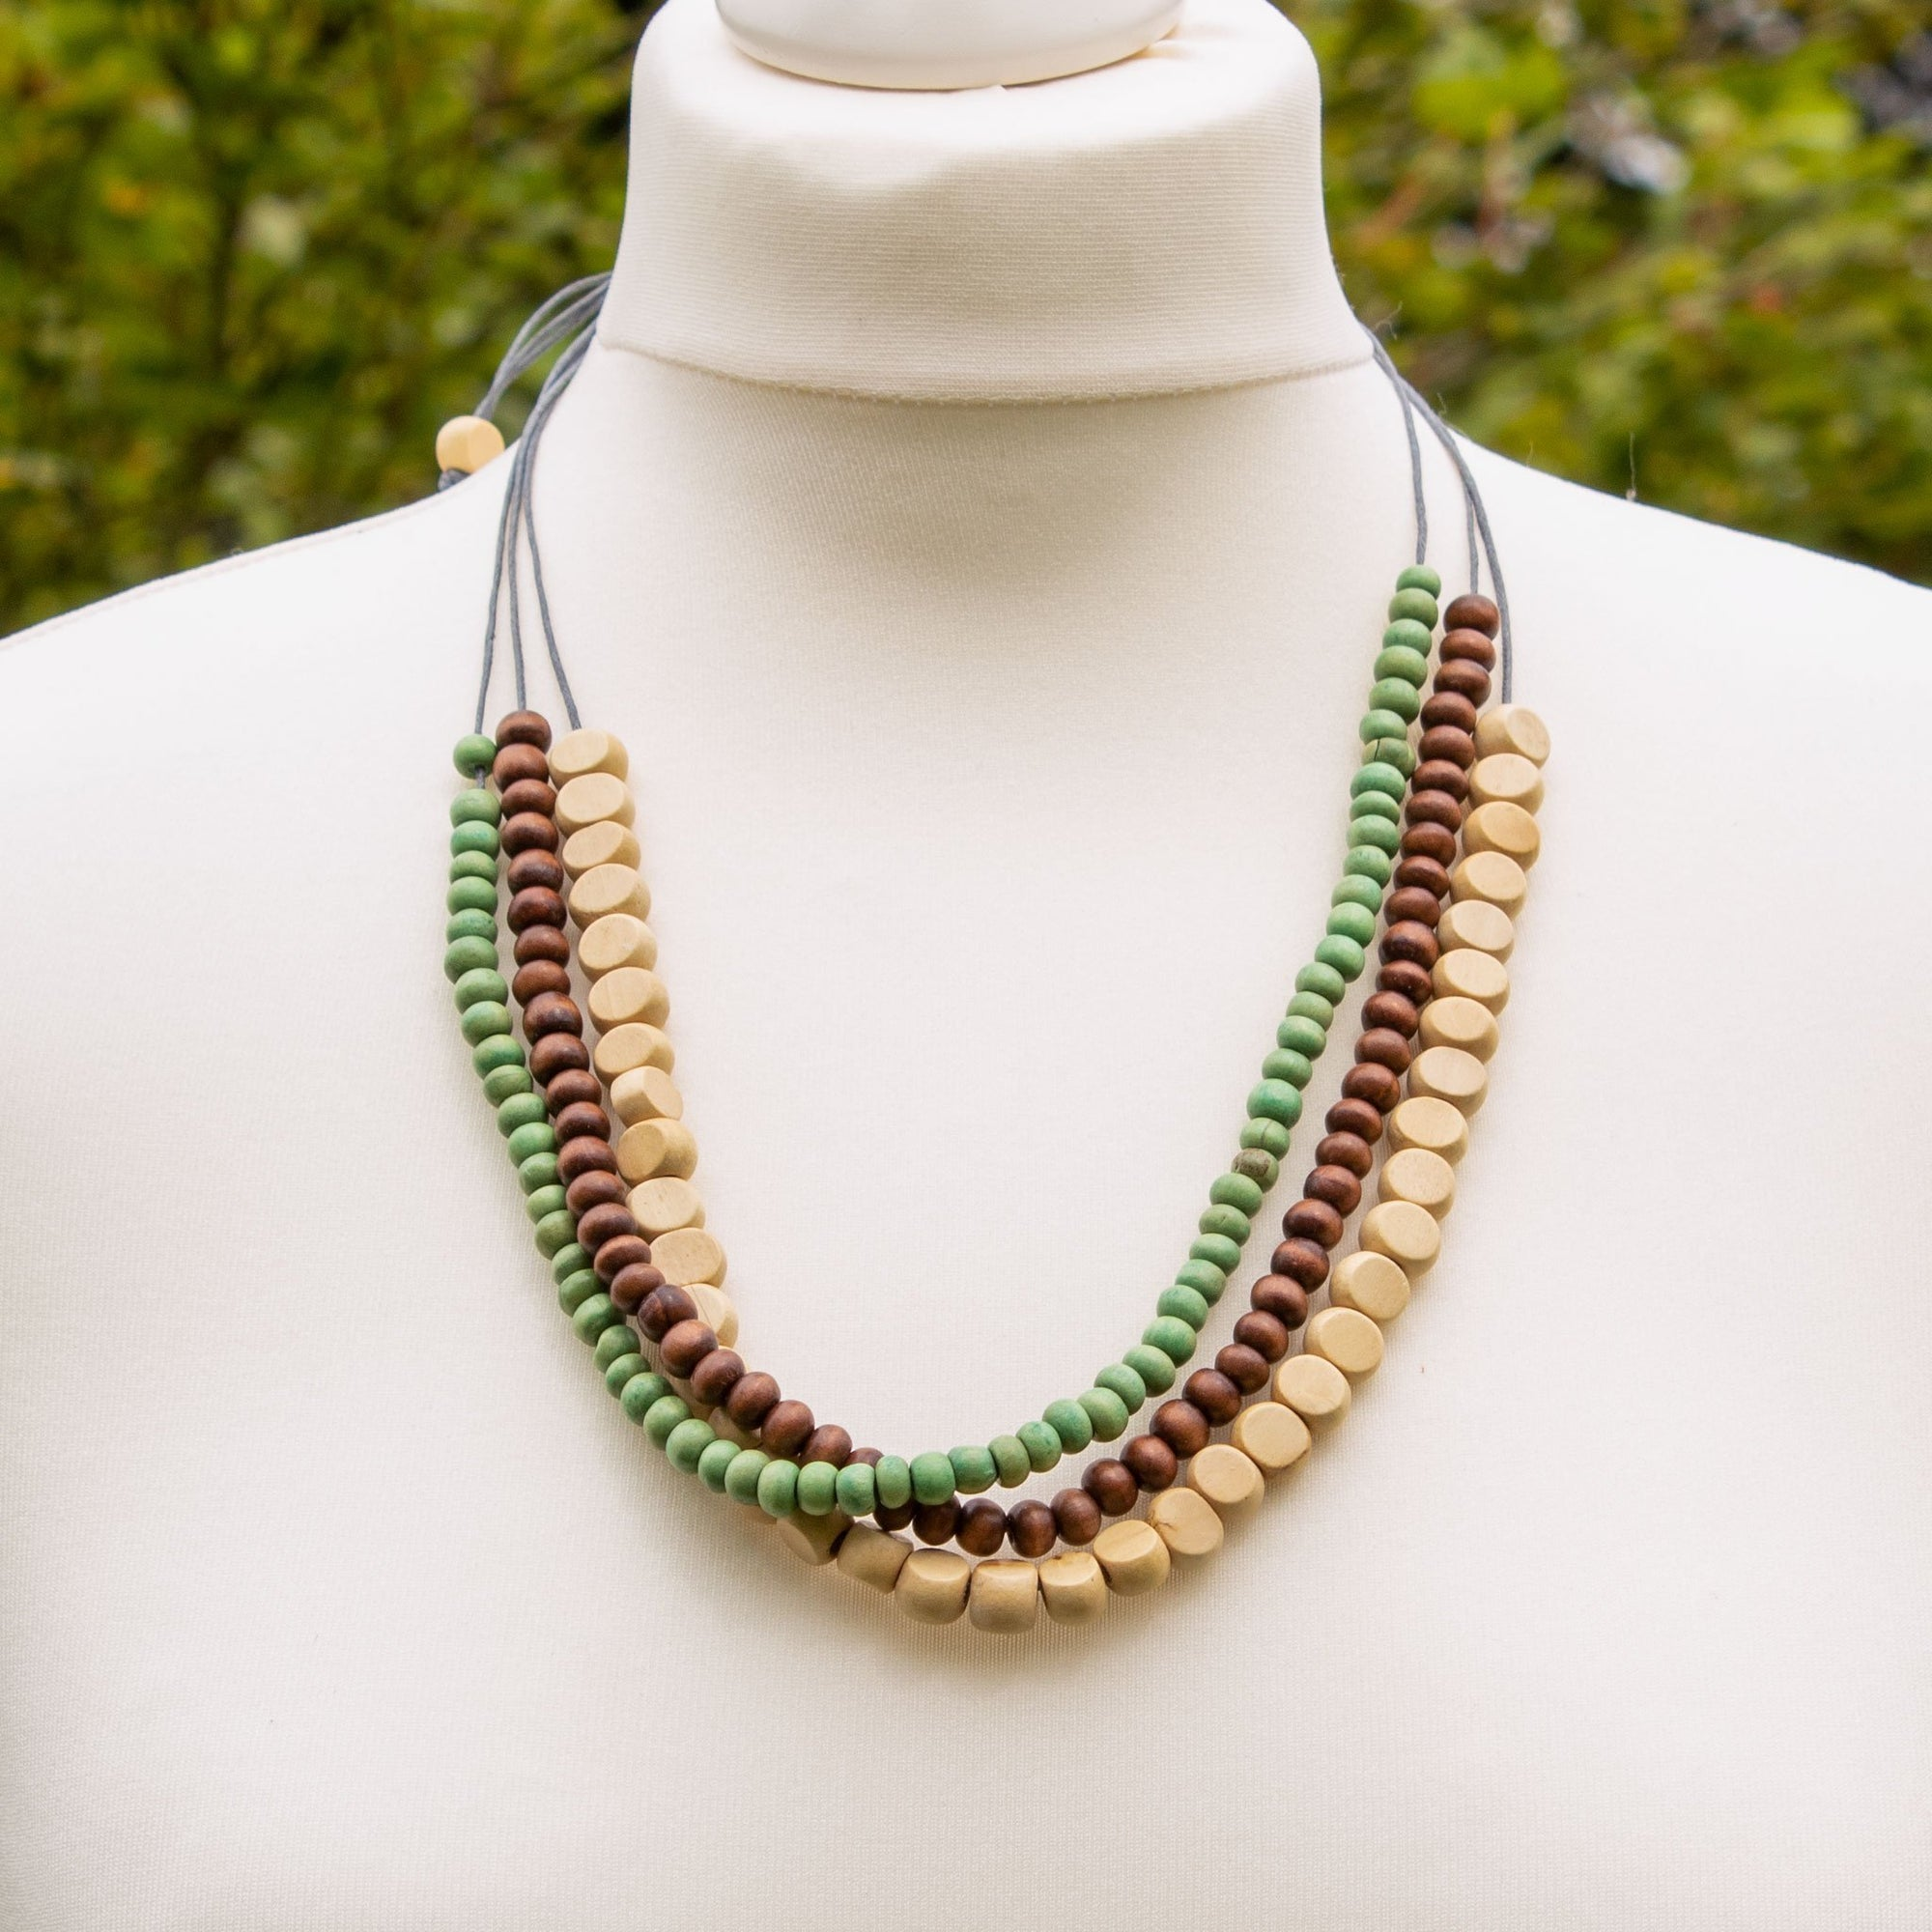 Green, Cream & Brown Wooden Necklace | Necklace - The Naughty Shrew